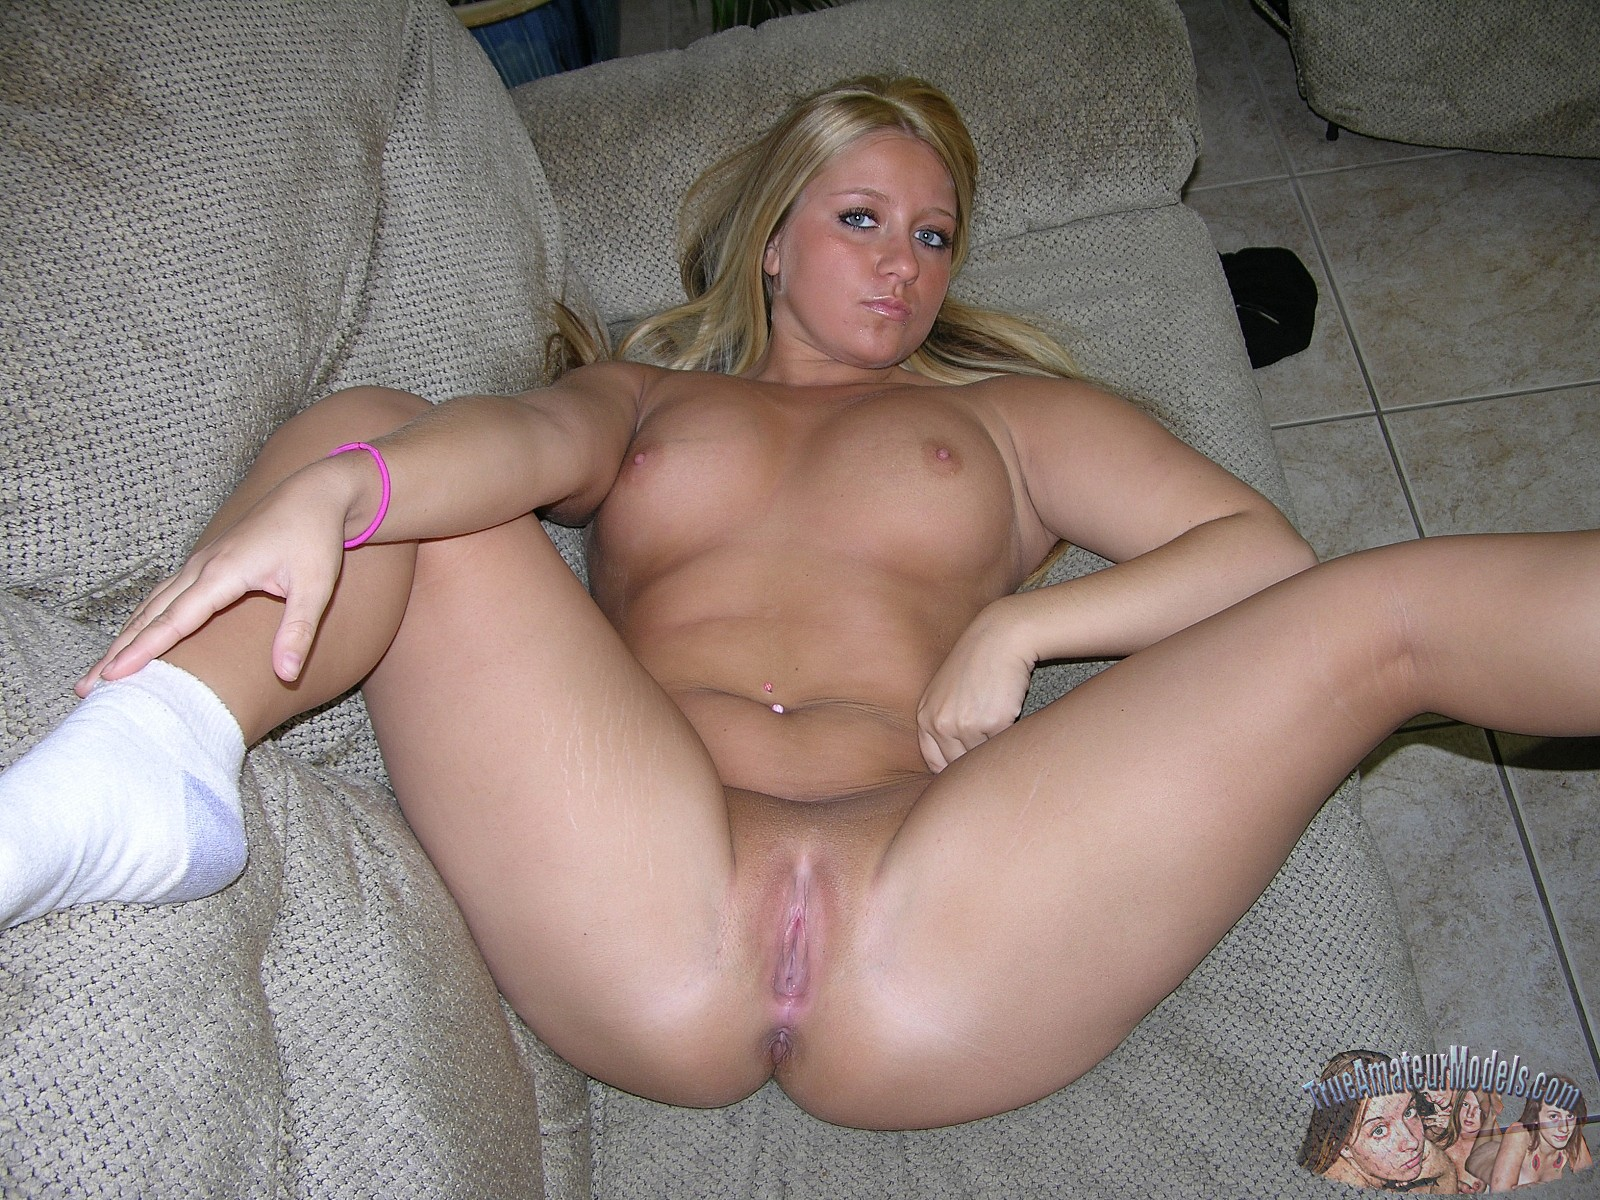 amature college blonde porn